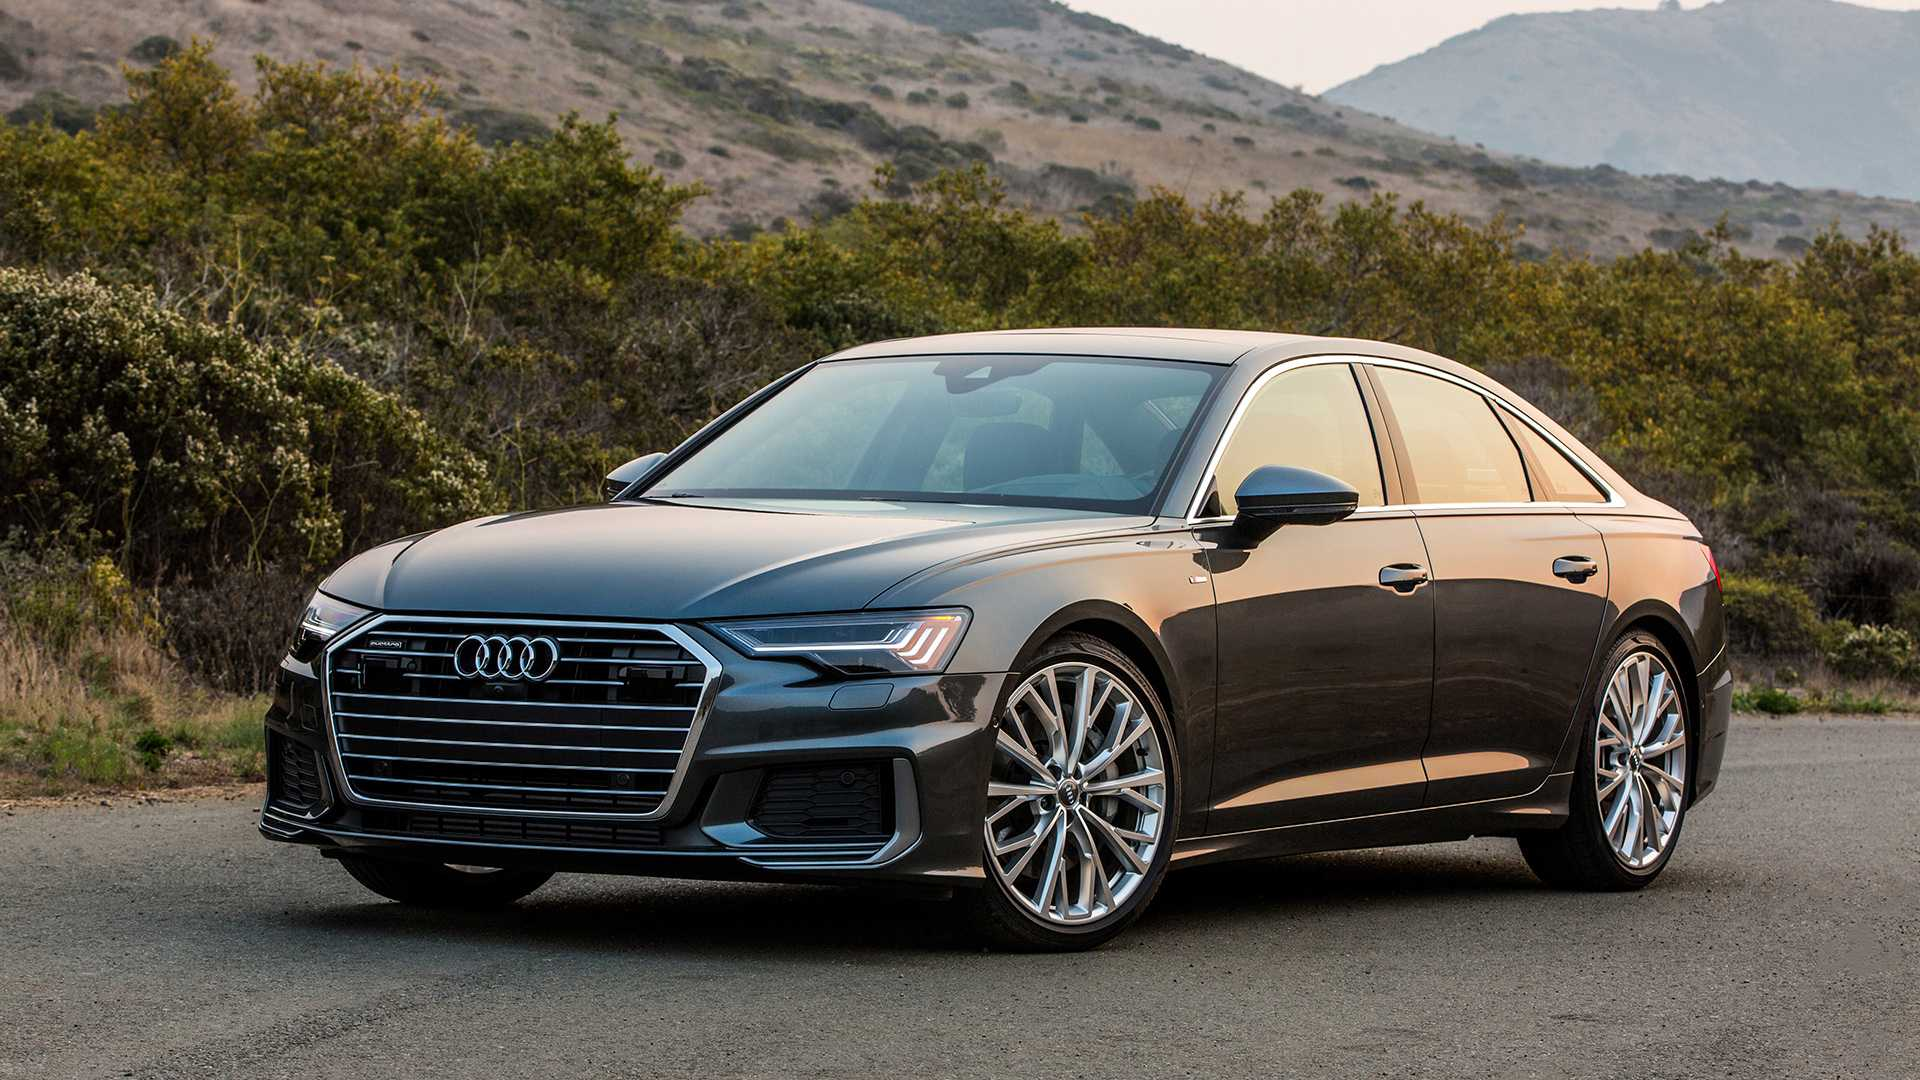 12 Concept of Audi A6 2019 Model for Audi A6 2019